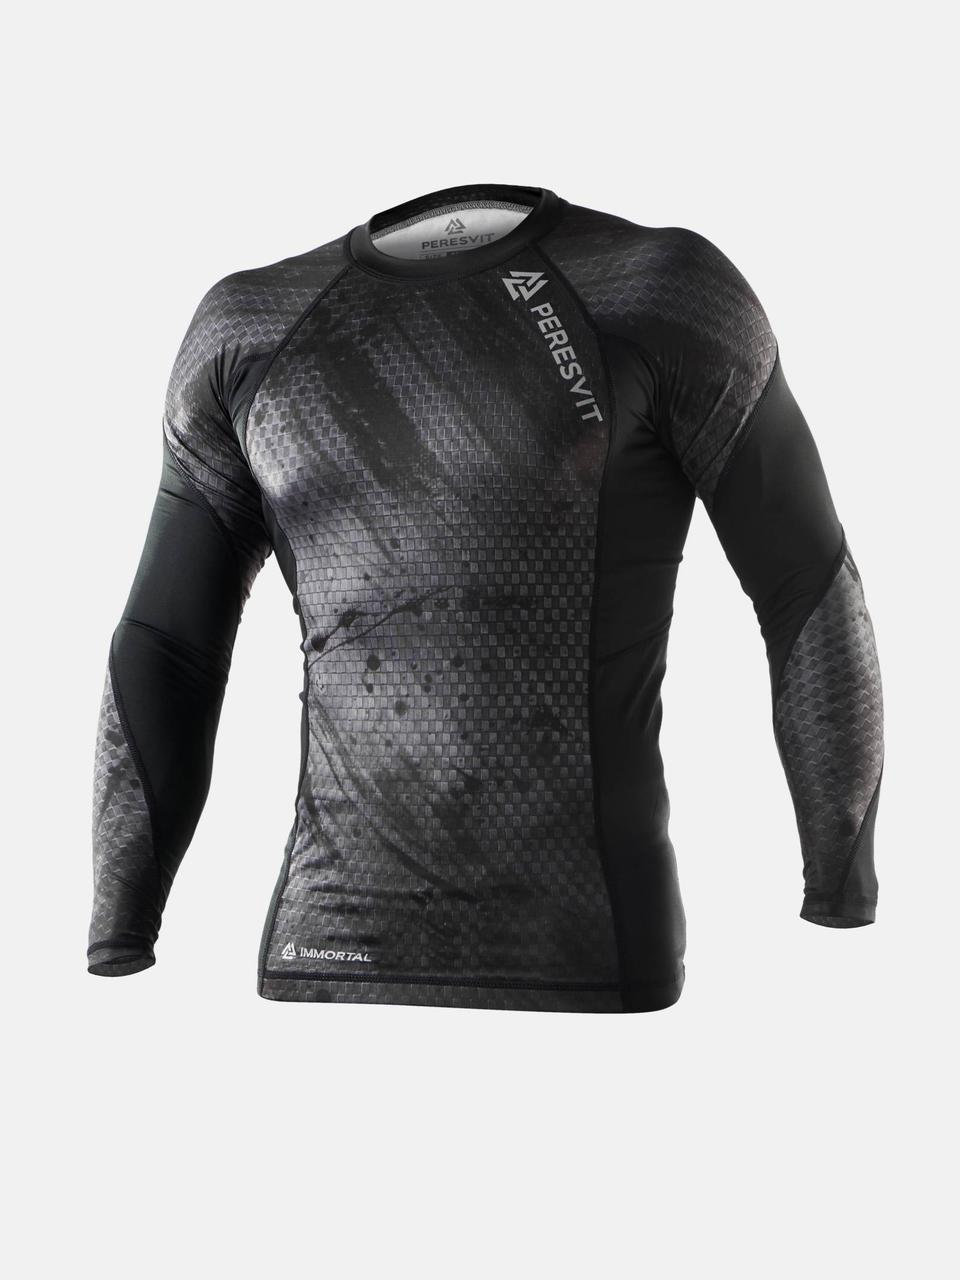 Рашгард Peresvit Immortal 2.0 Black Rain Long Sleeve Rash Guard